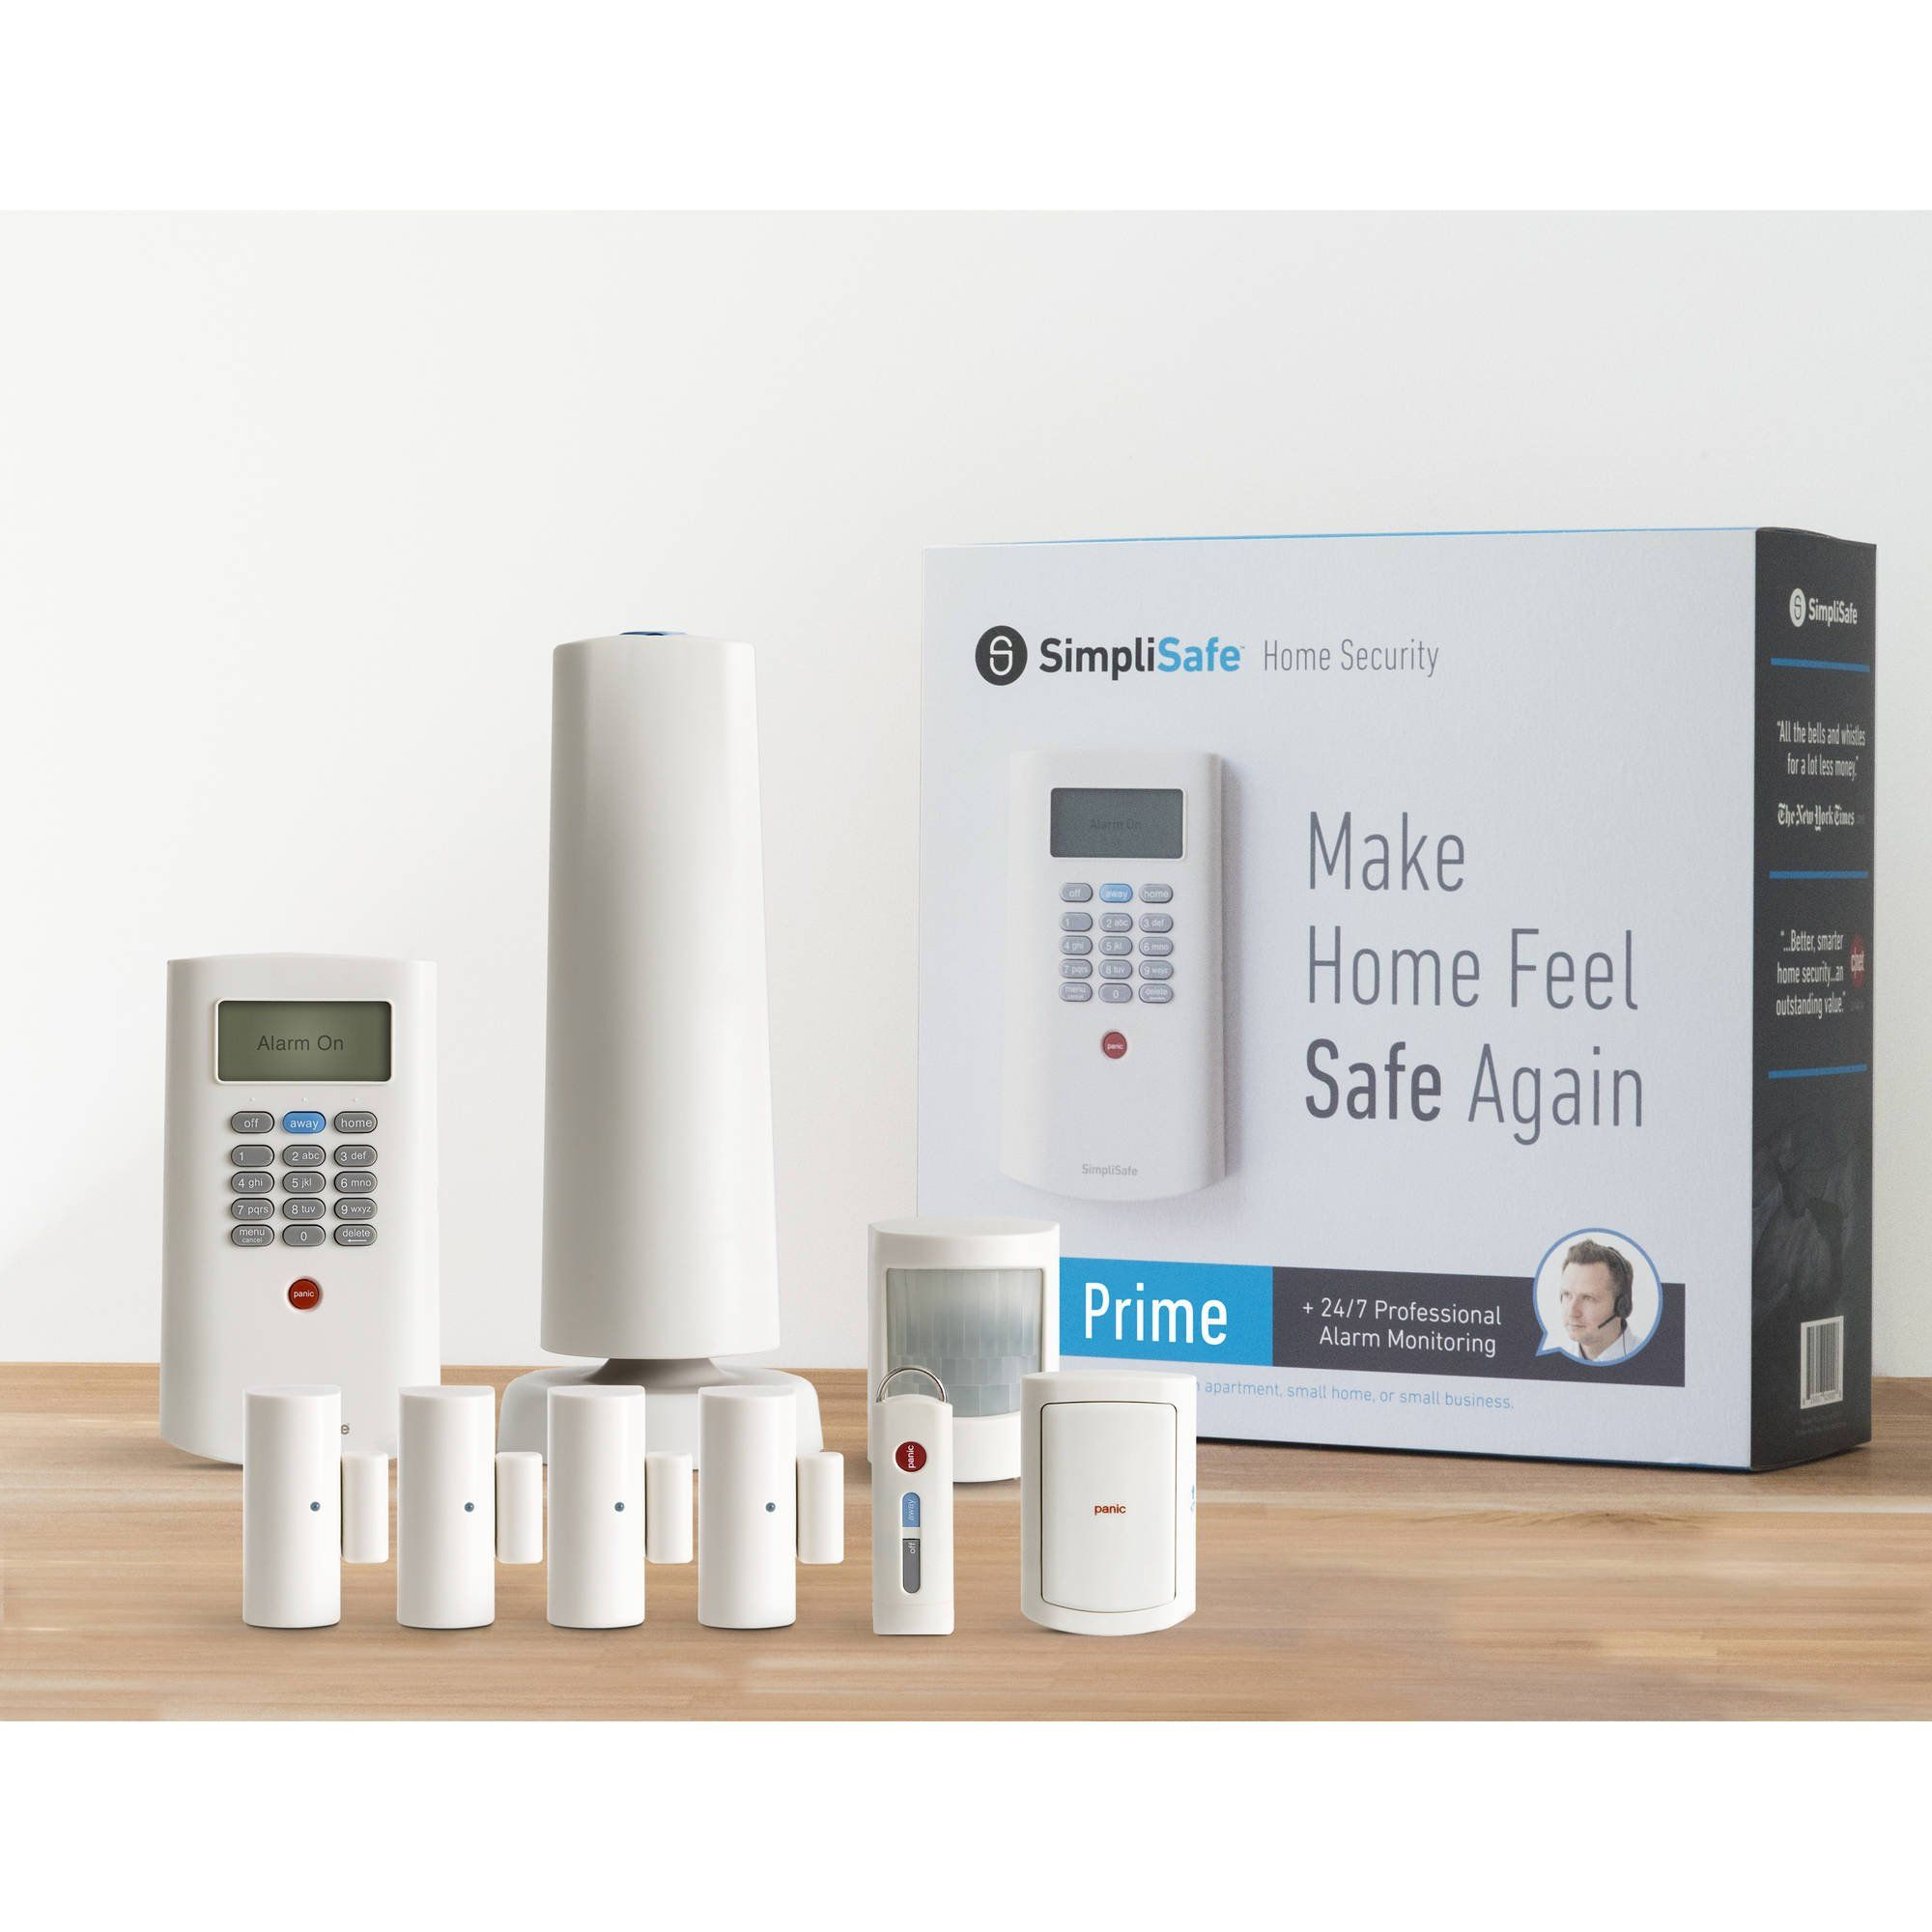 Simplisafe Prime Home Security System 9 Piece Kit Wireless Home Security Systems Home Security Systems Home Security